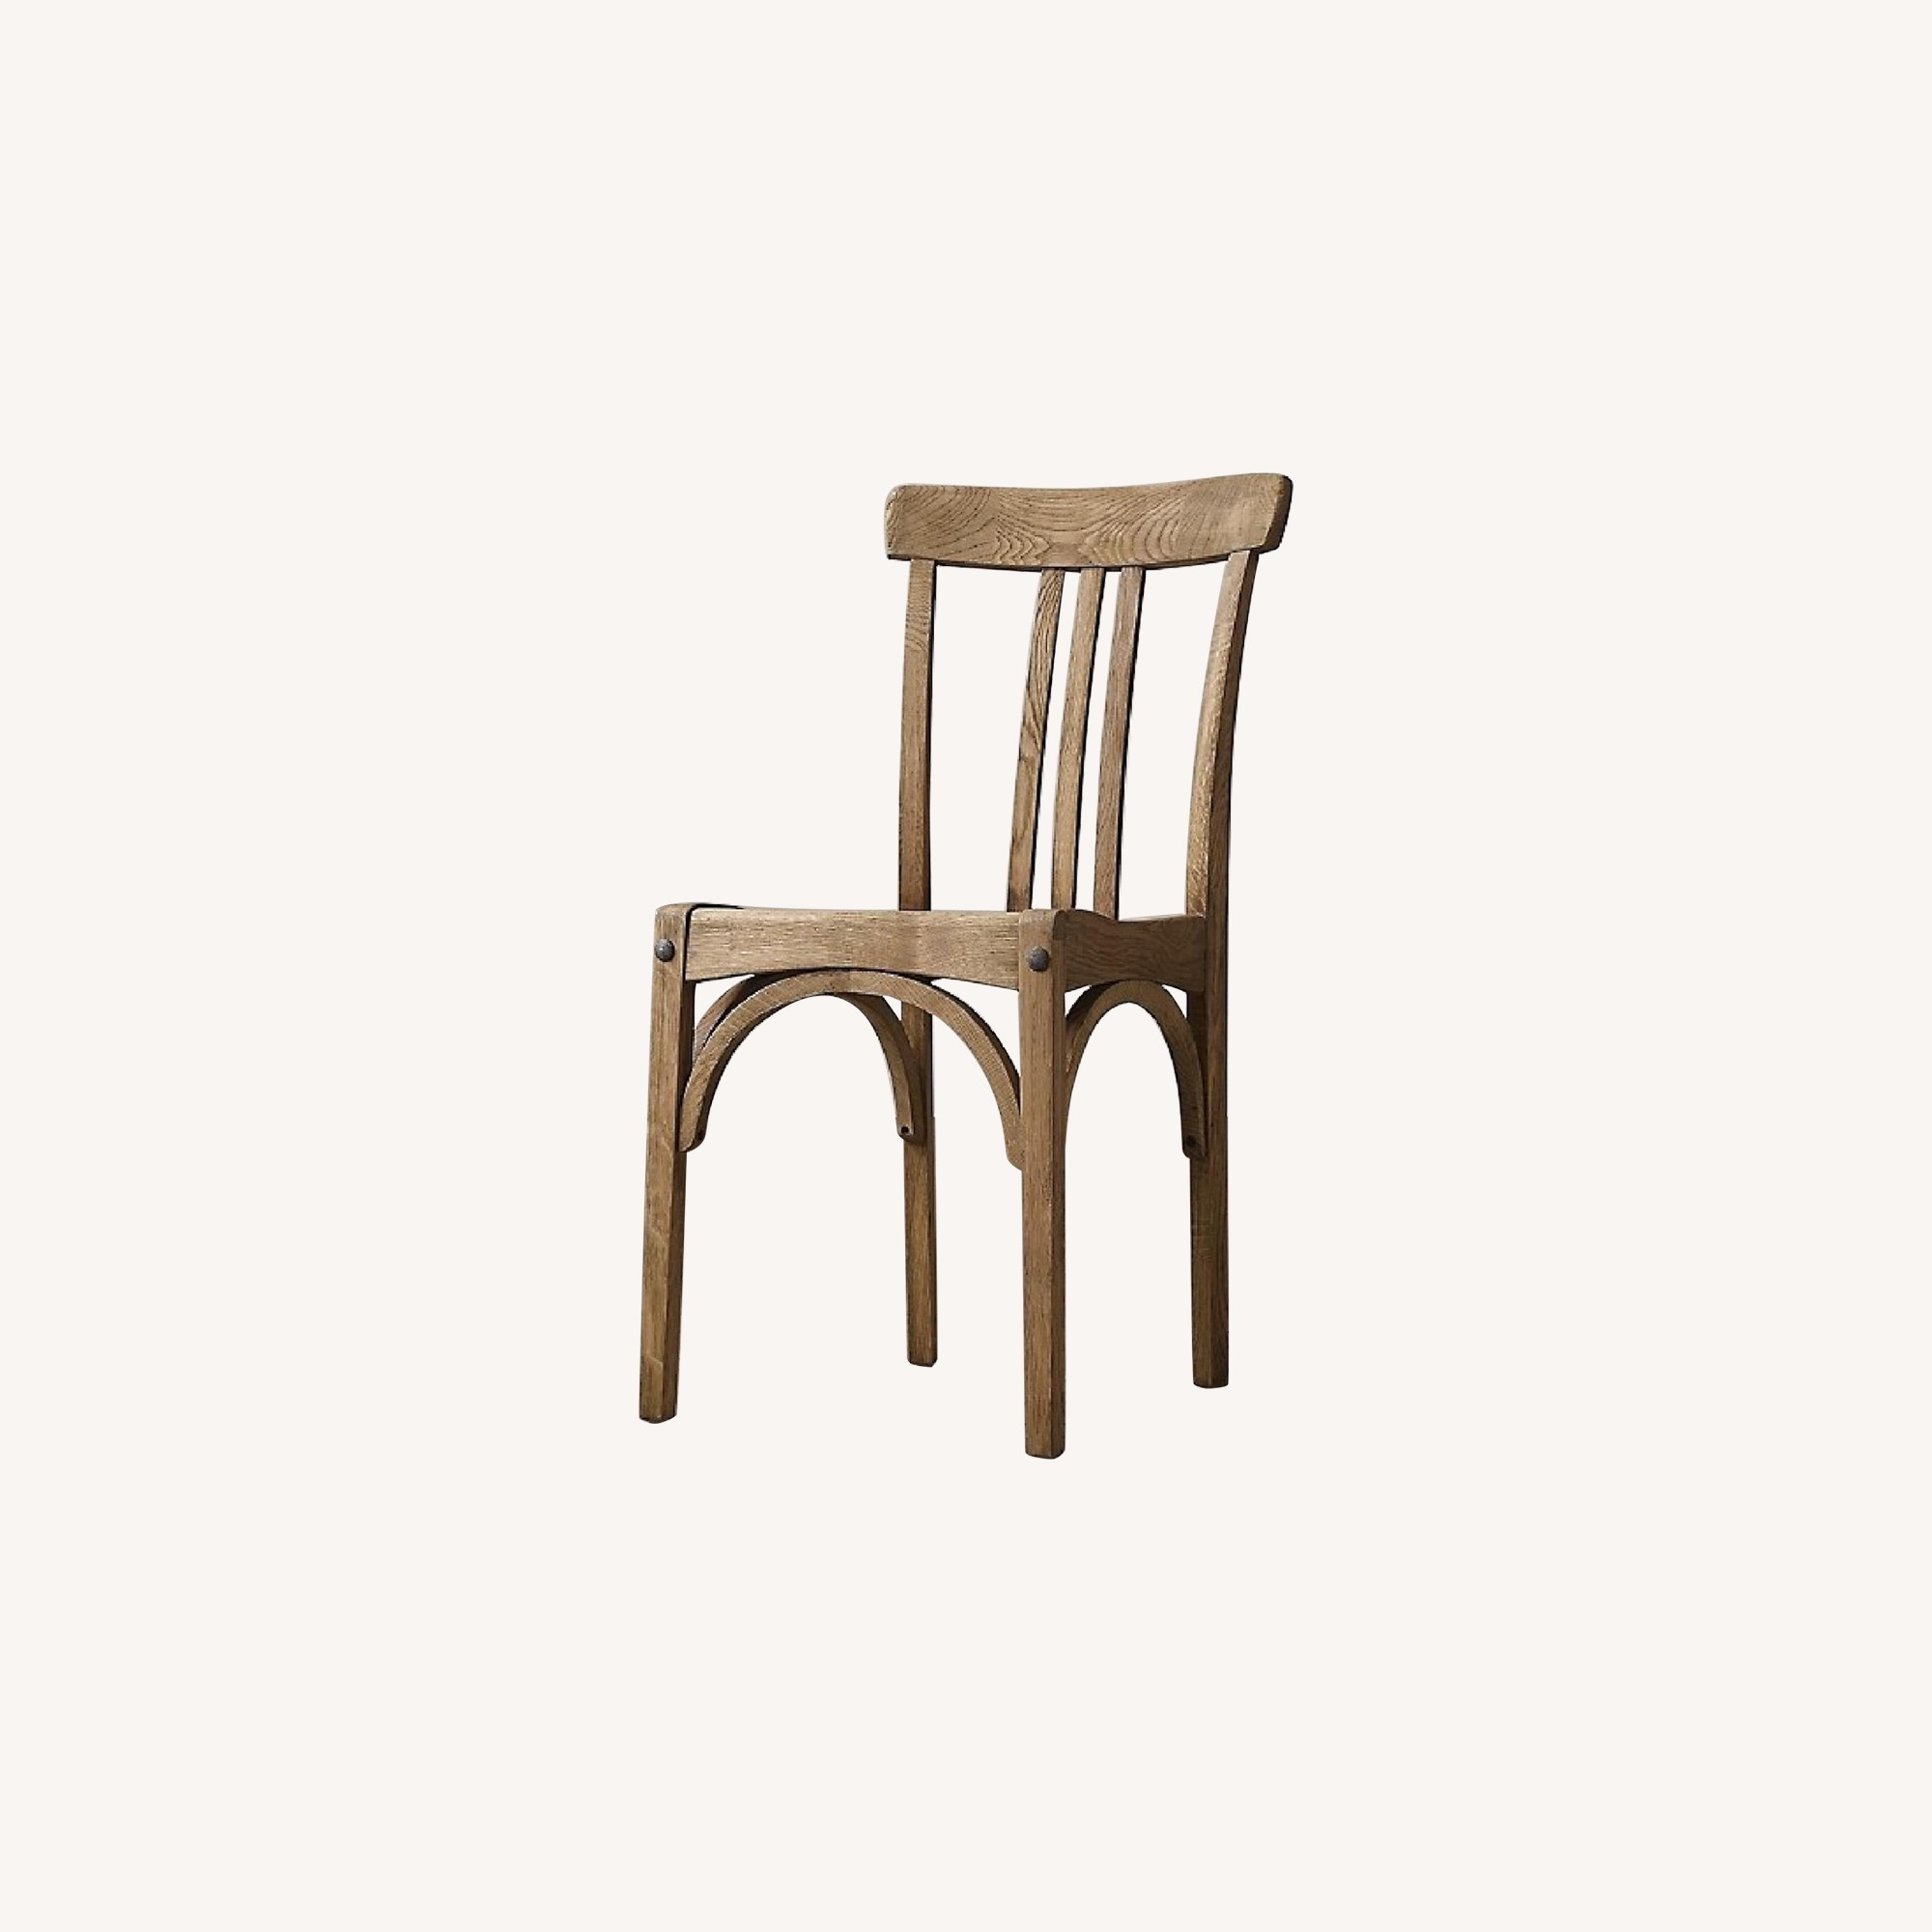 Restoration Hardware Sinclair Wood Dining Chairs